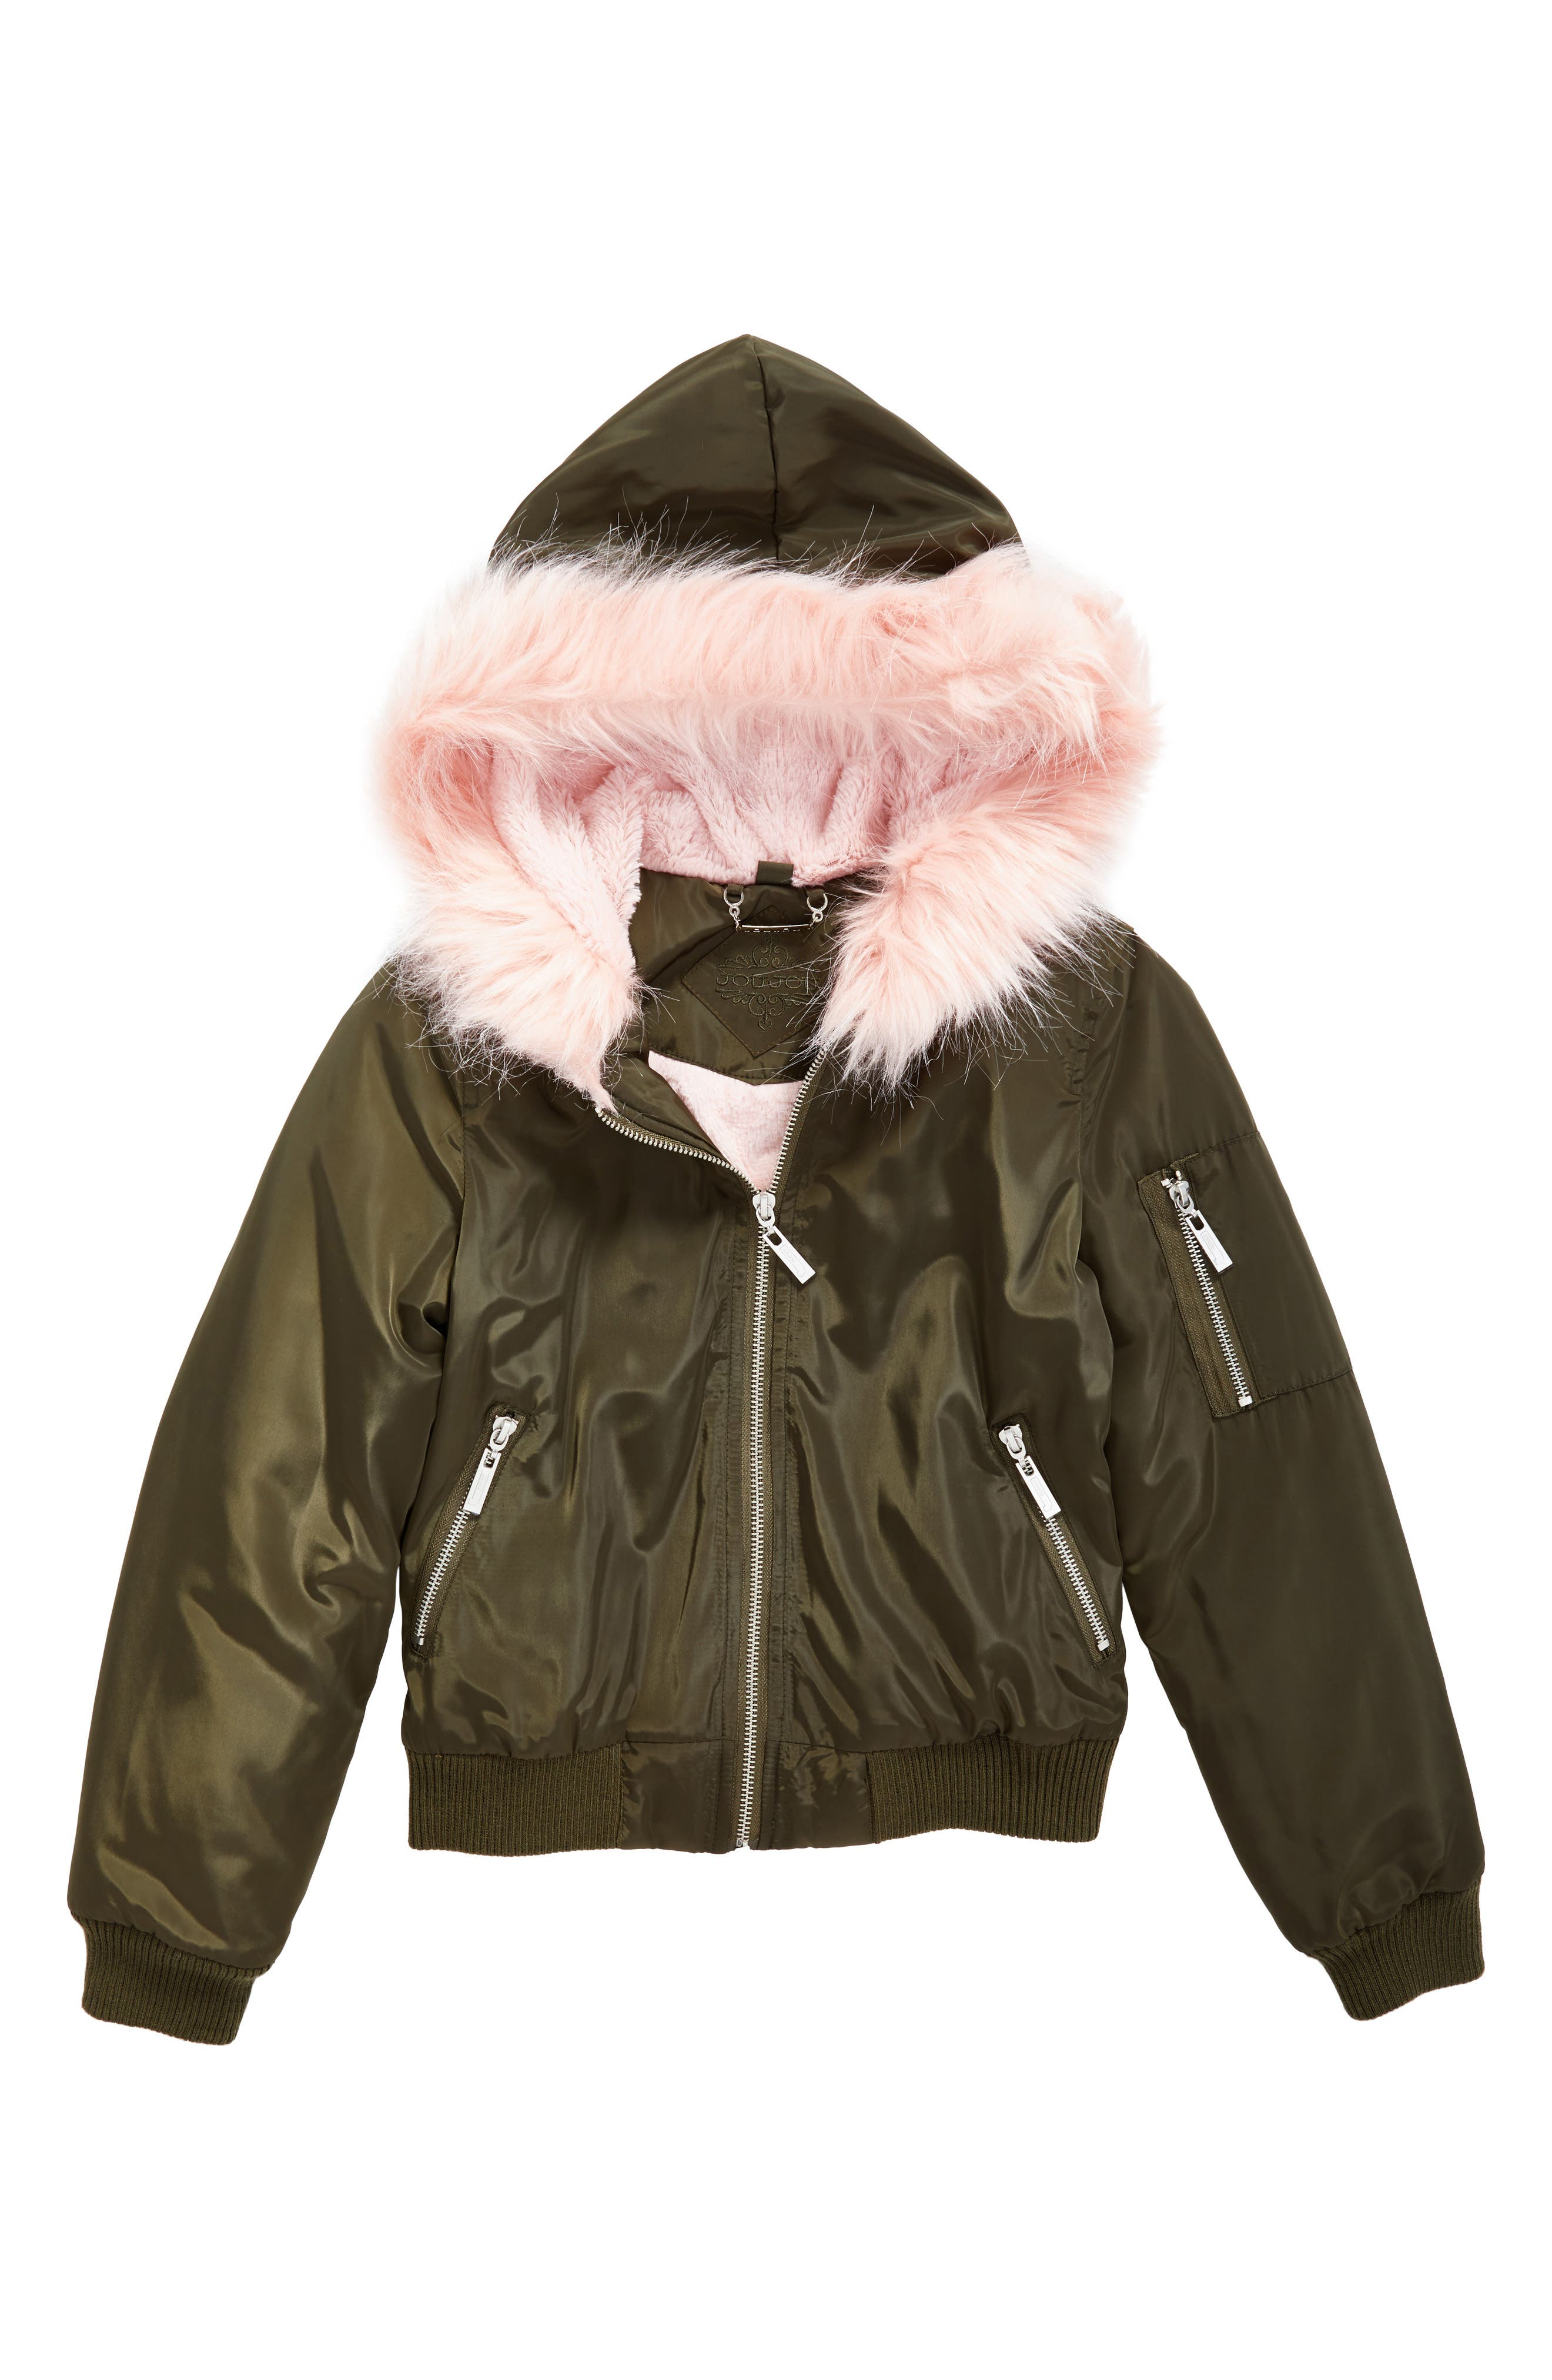 Hooded Bomber Jacket with Faux Fur Trim,                             Main thumbnail 1, color,                             308